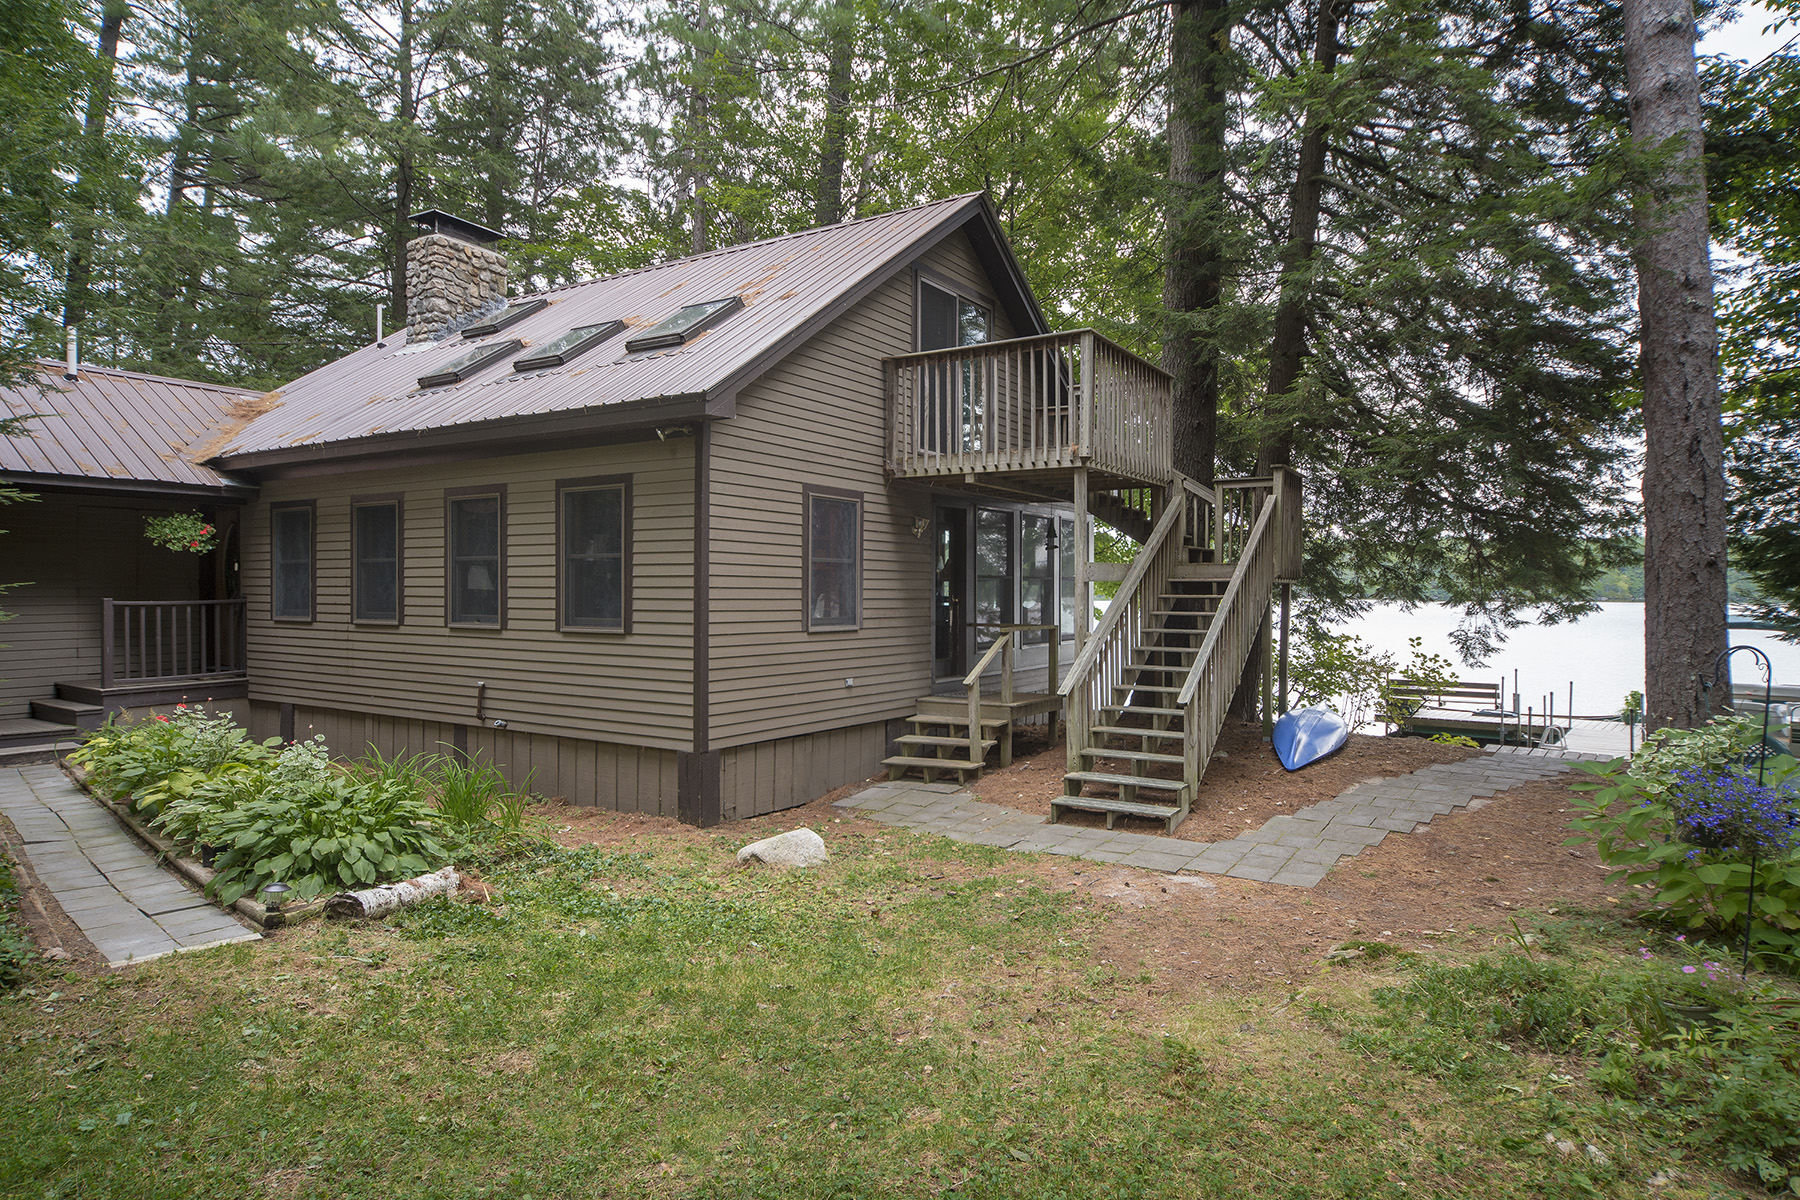 Single Family Home for Sale at 18 Sleigh Bell Lane Bridgton, Maine 04009 United States